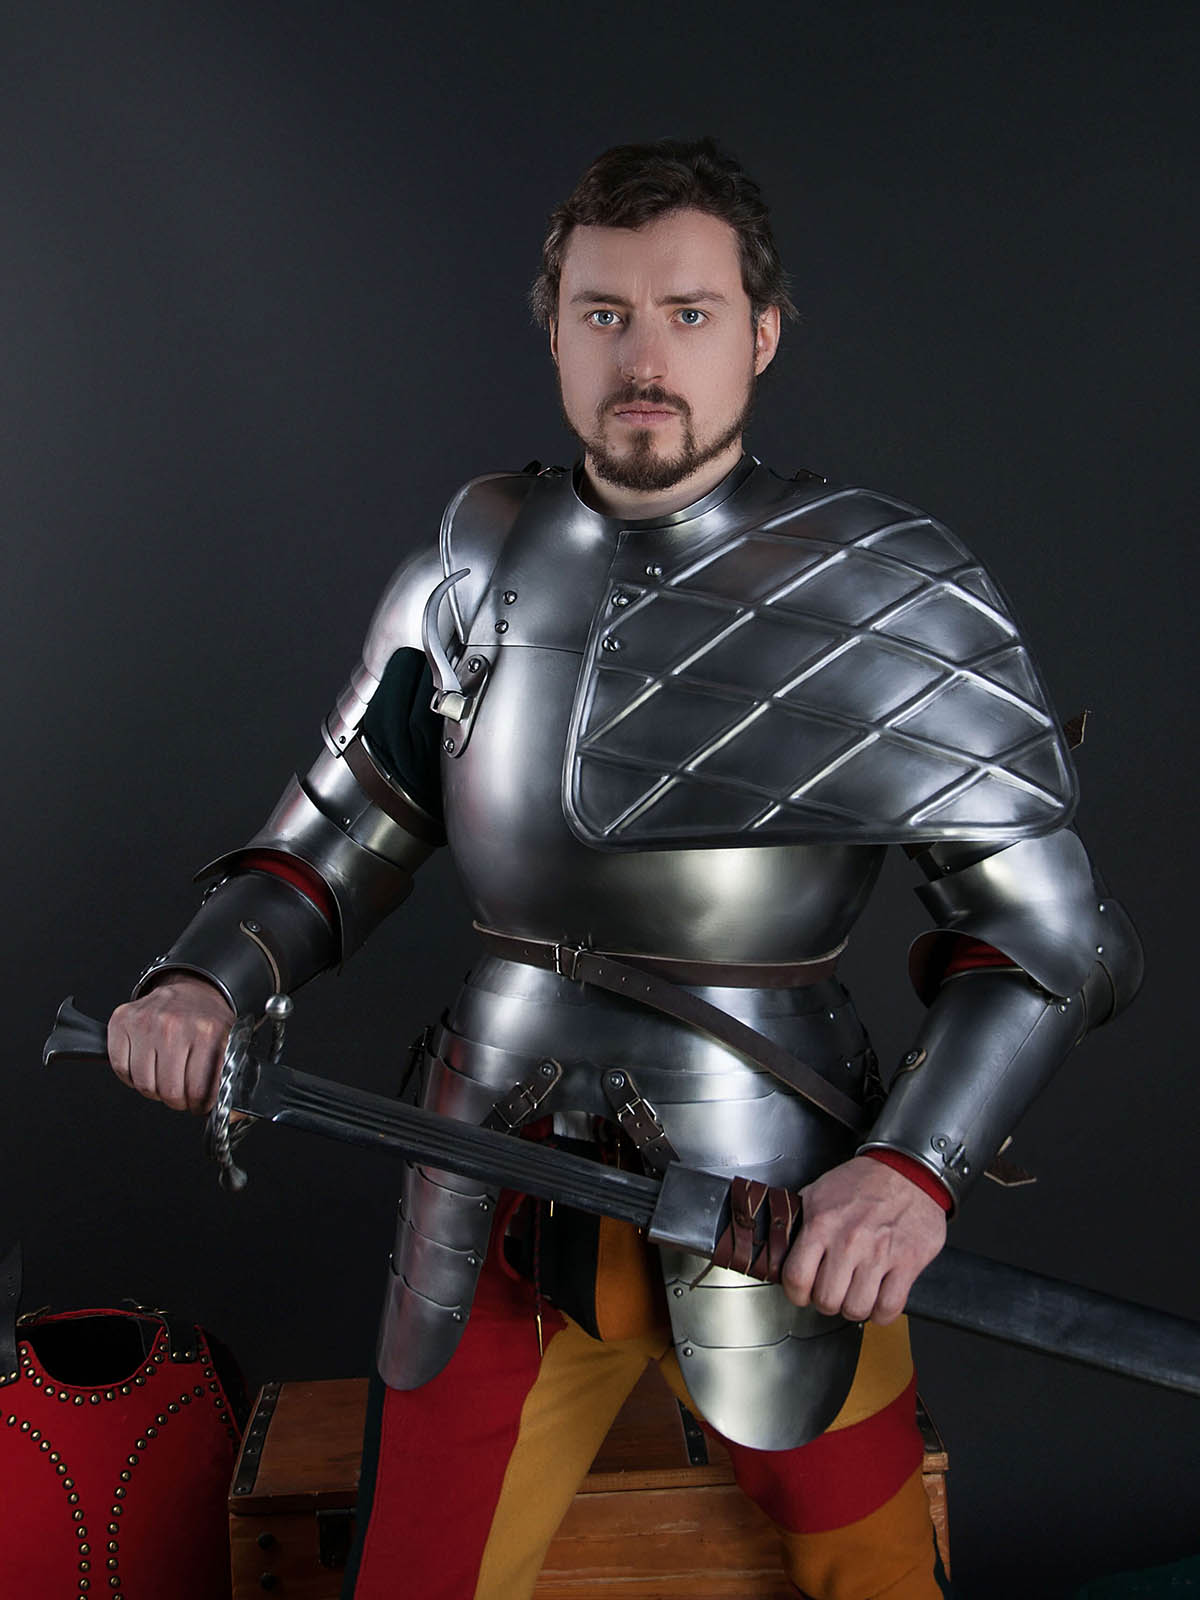 Knight Of Wands As Advice: Jousting Knight Armor, Jousting Equipment, Jousting Outfit